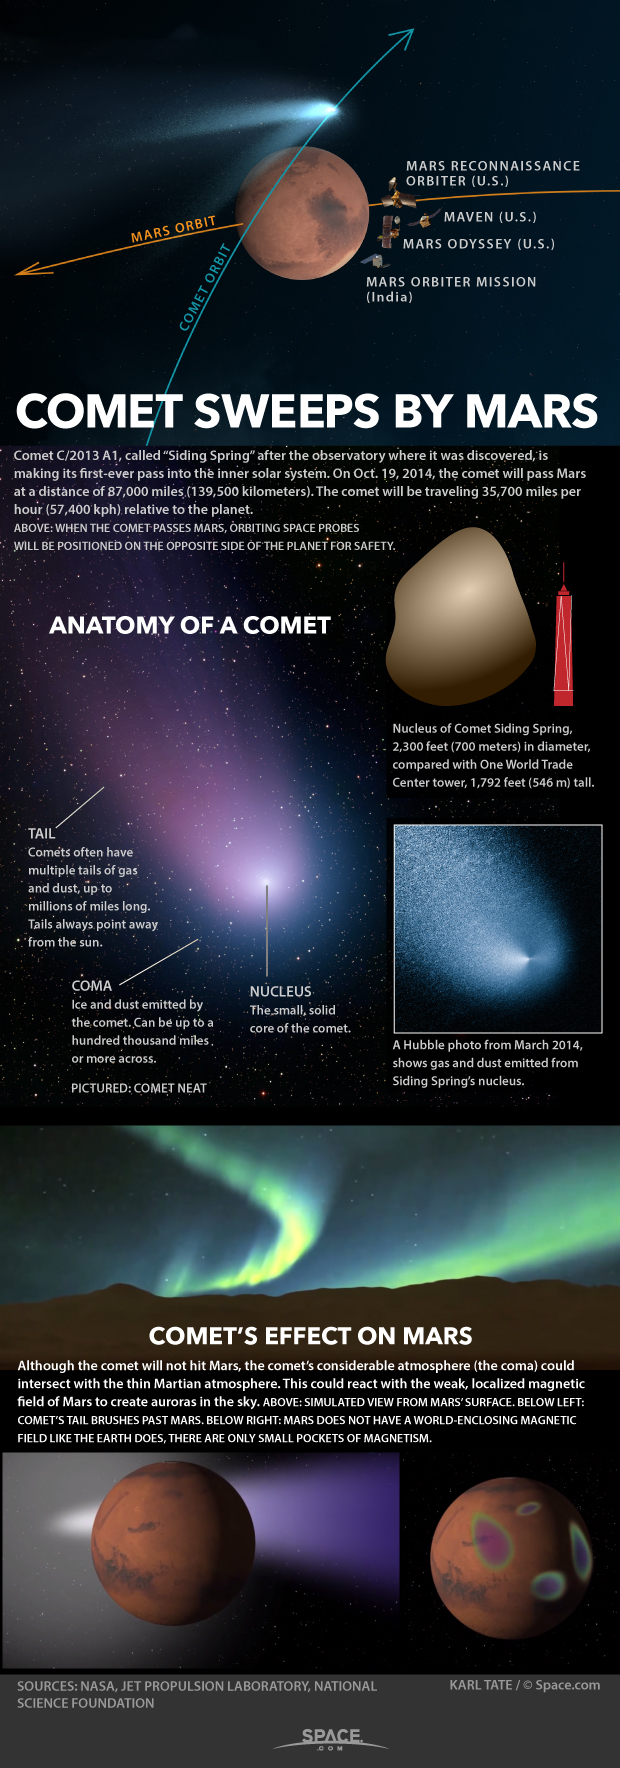 Comet's Close Encounter with Mars Explained (Infographic)